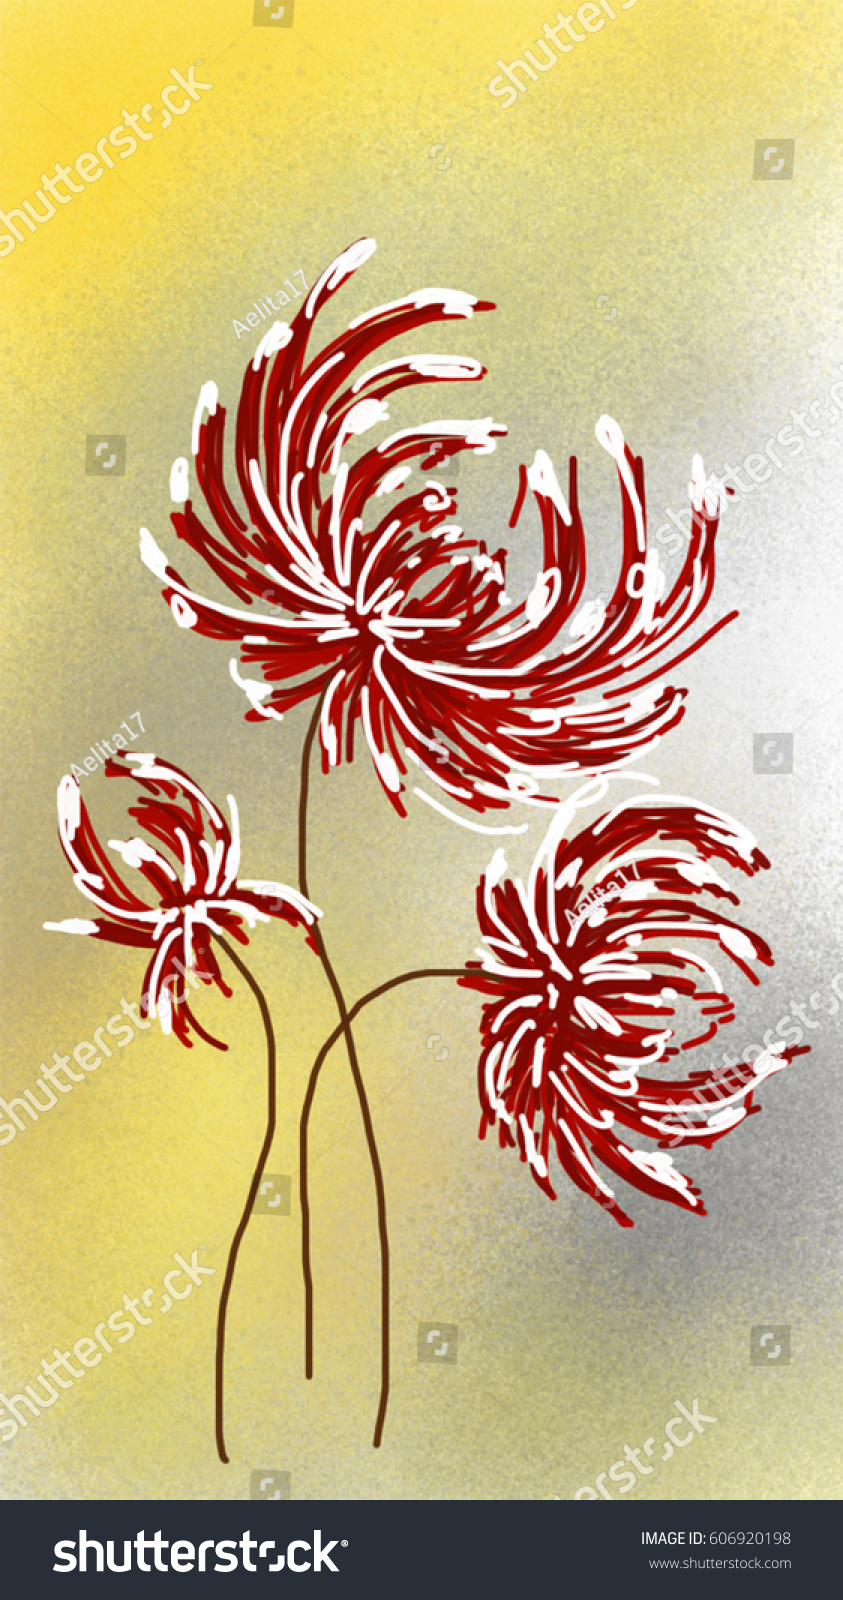 Illustration Red Flower On Yellow Grey Stock Illustration 606920198